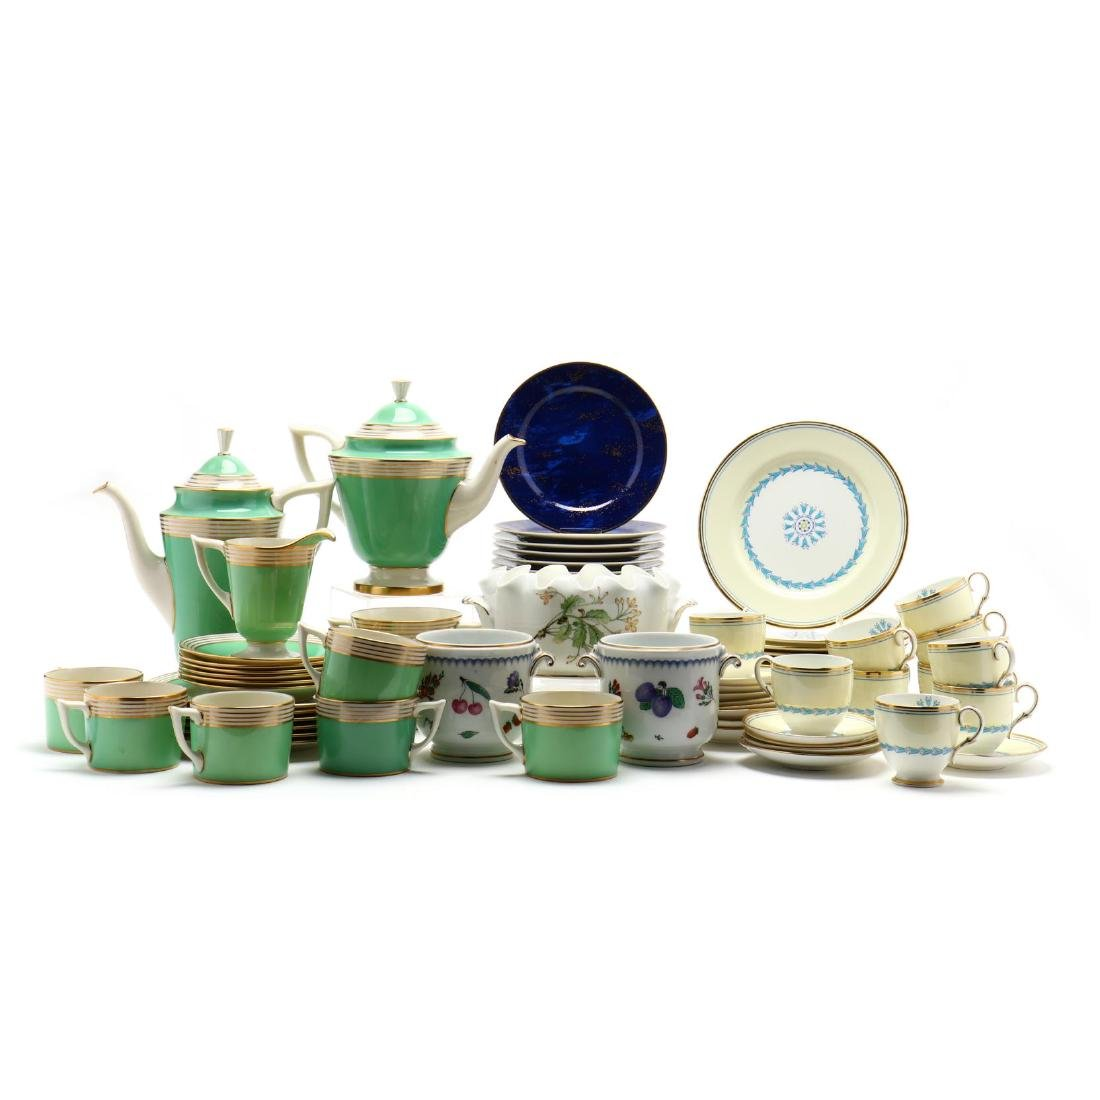 An Assortment of China Tableware